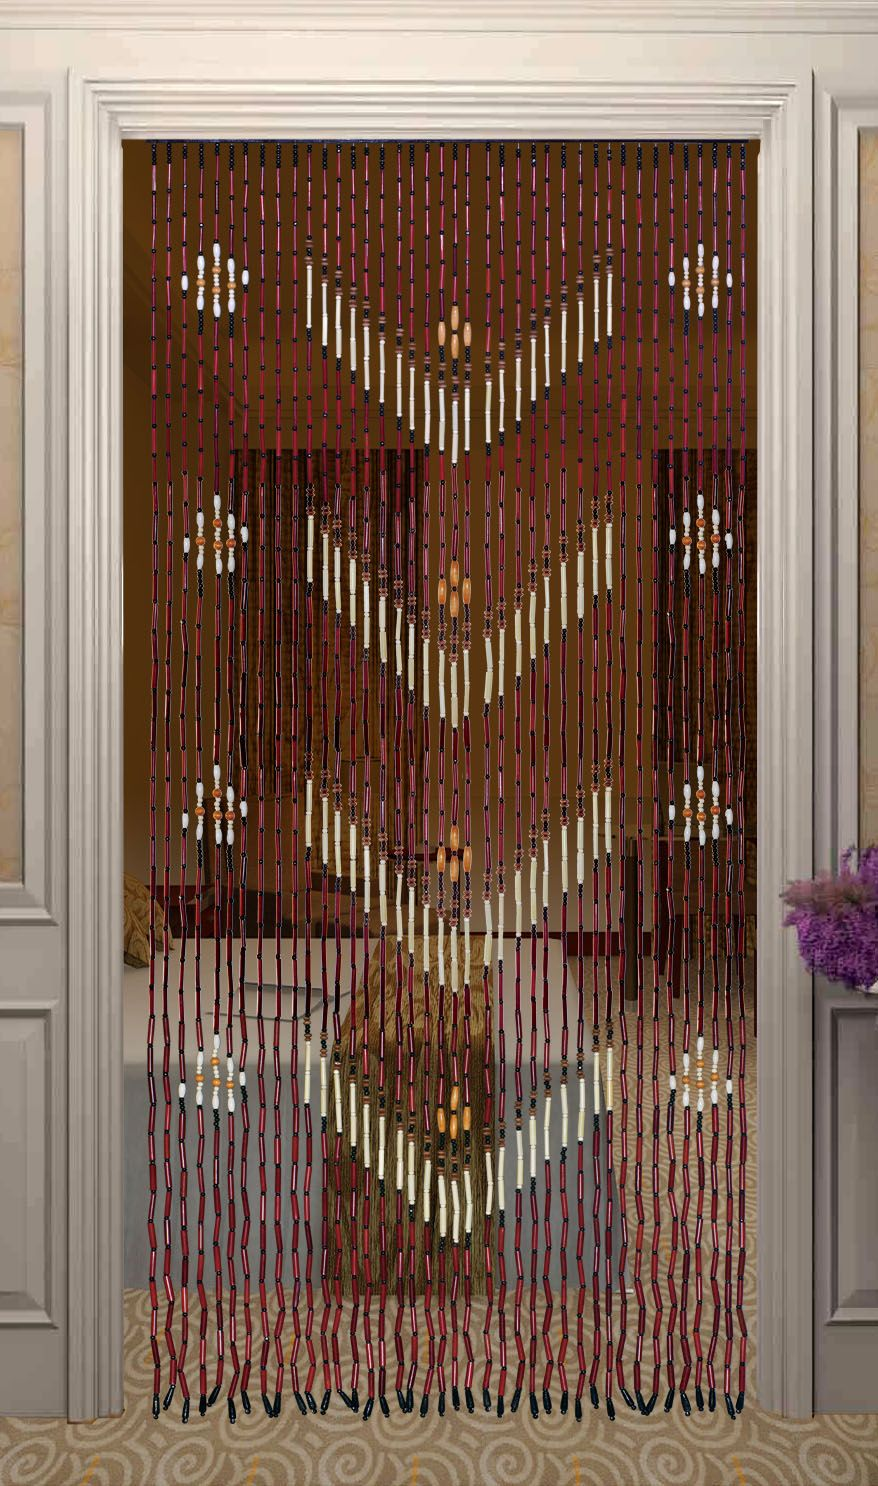 How To Make Creative Spaces Withs Door Bead Curtains Home Trends